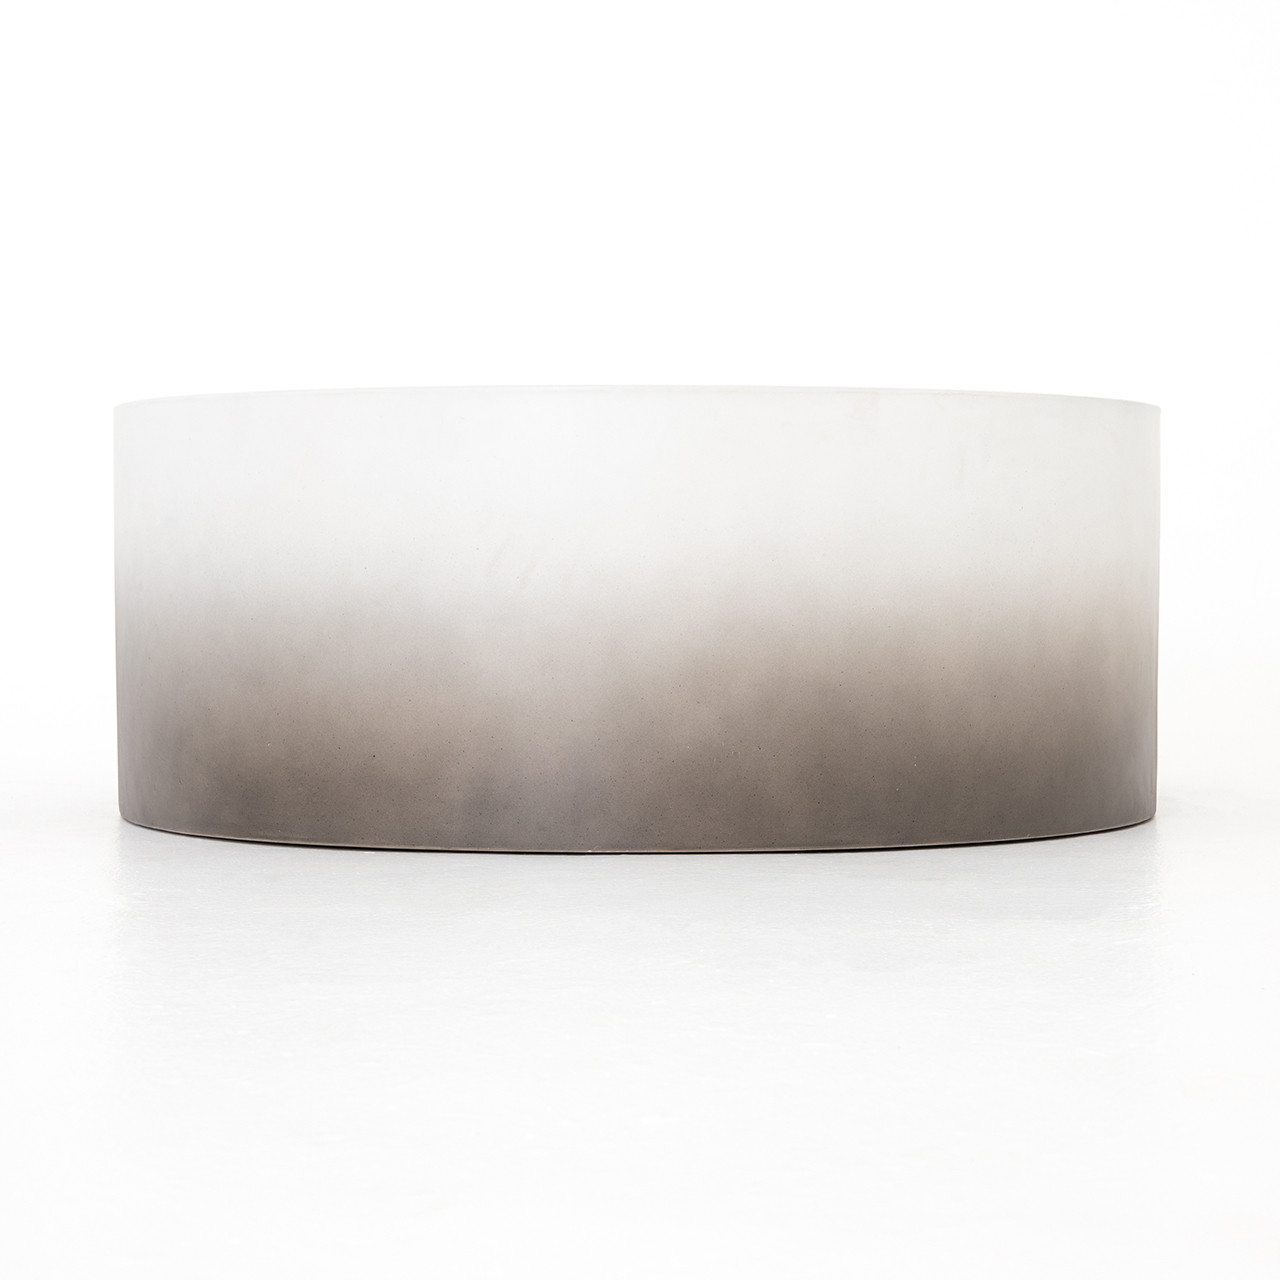 Donovan Coffee Table - Slate Grey Ombre